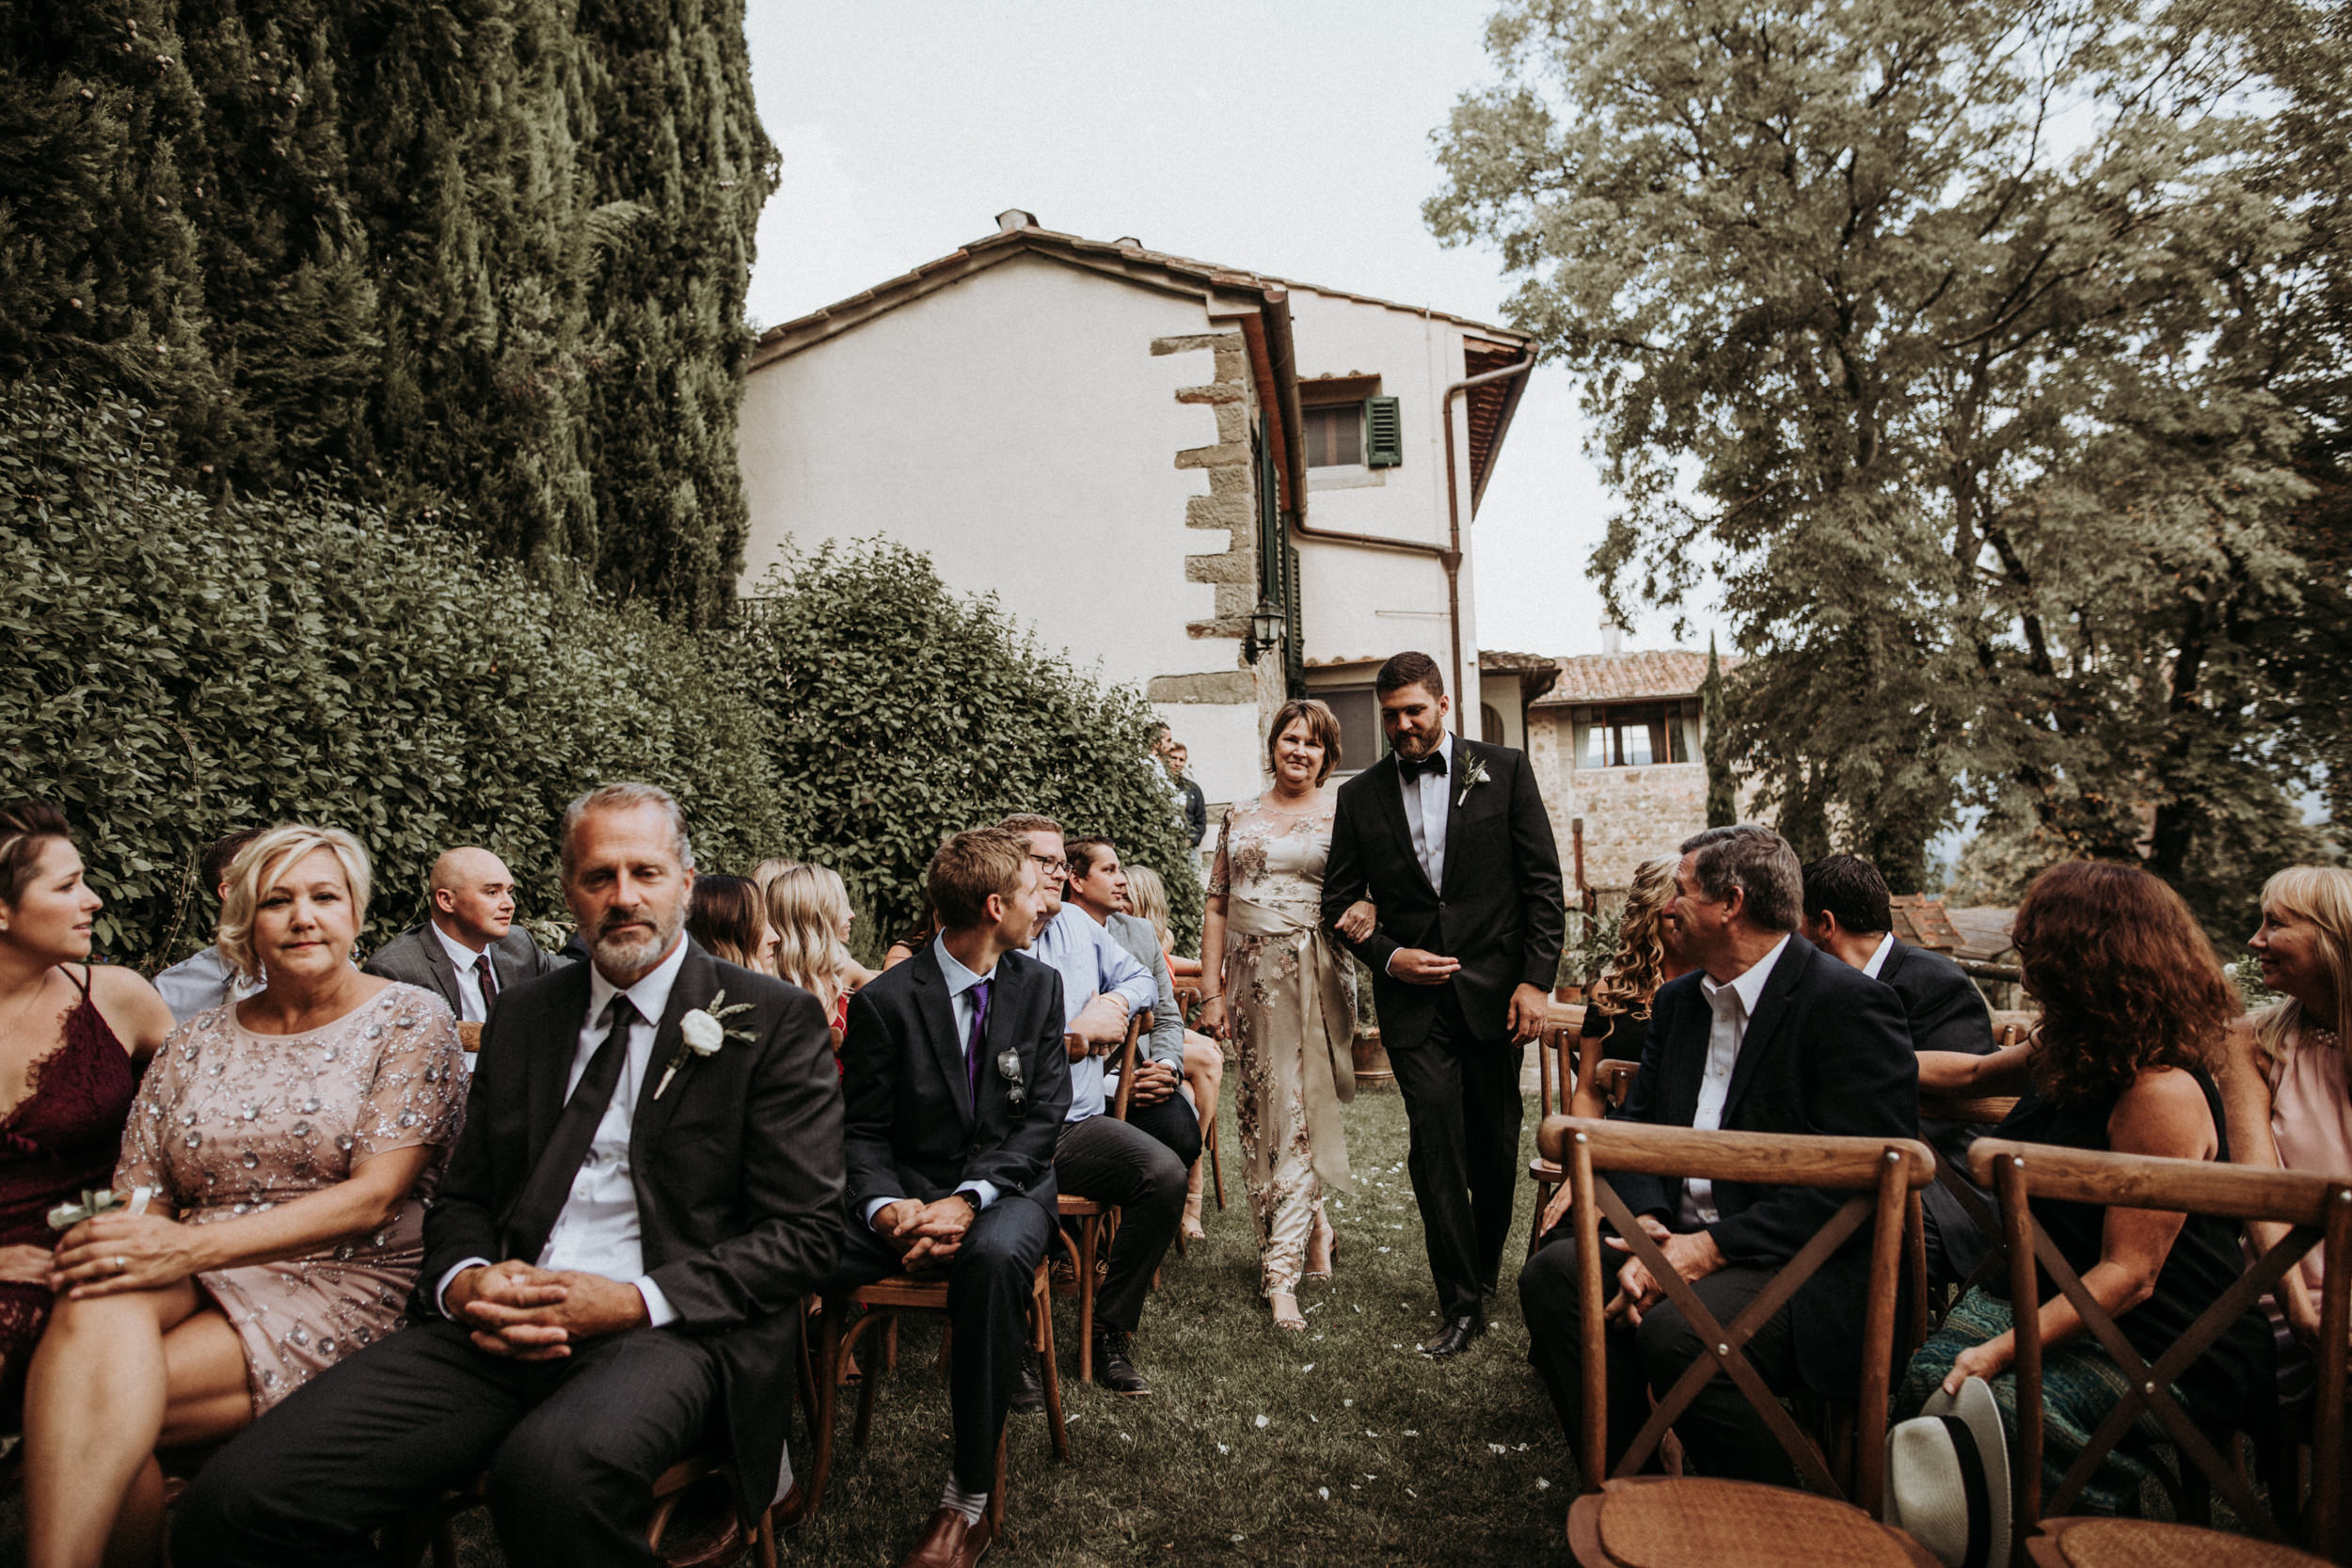 dm_photography_KW_Tuscanyweddingday_198